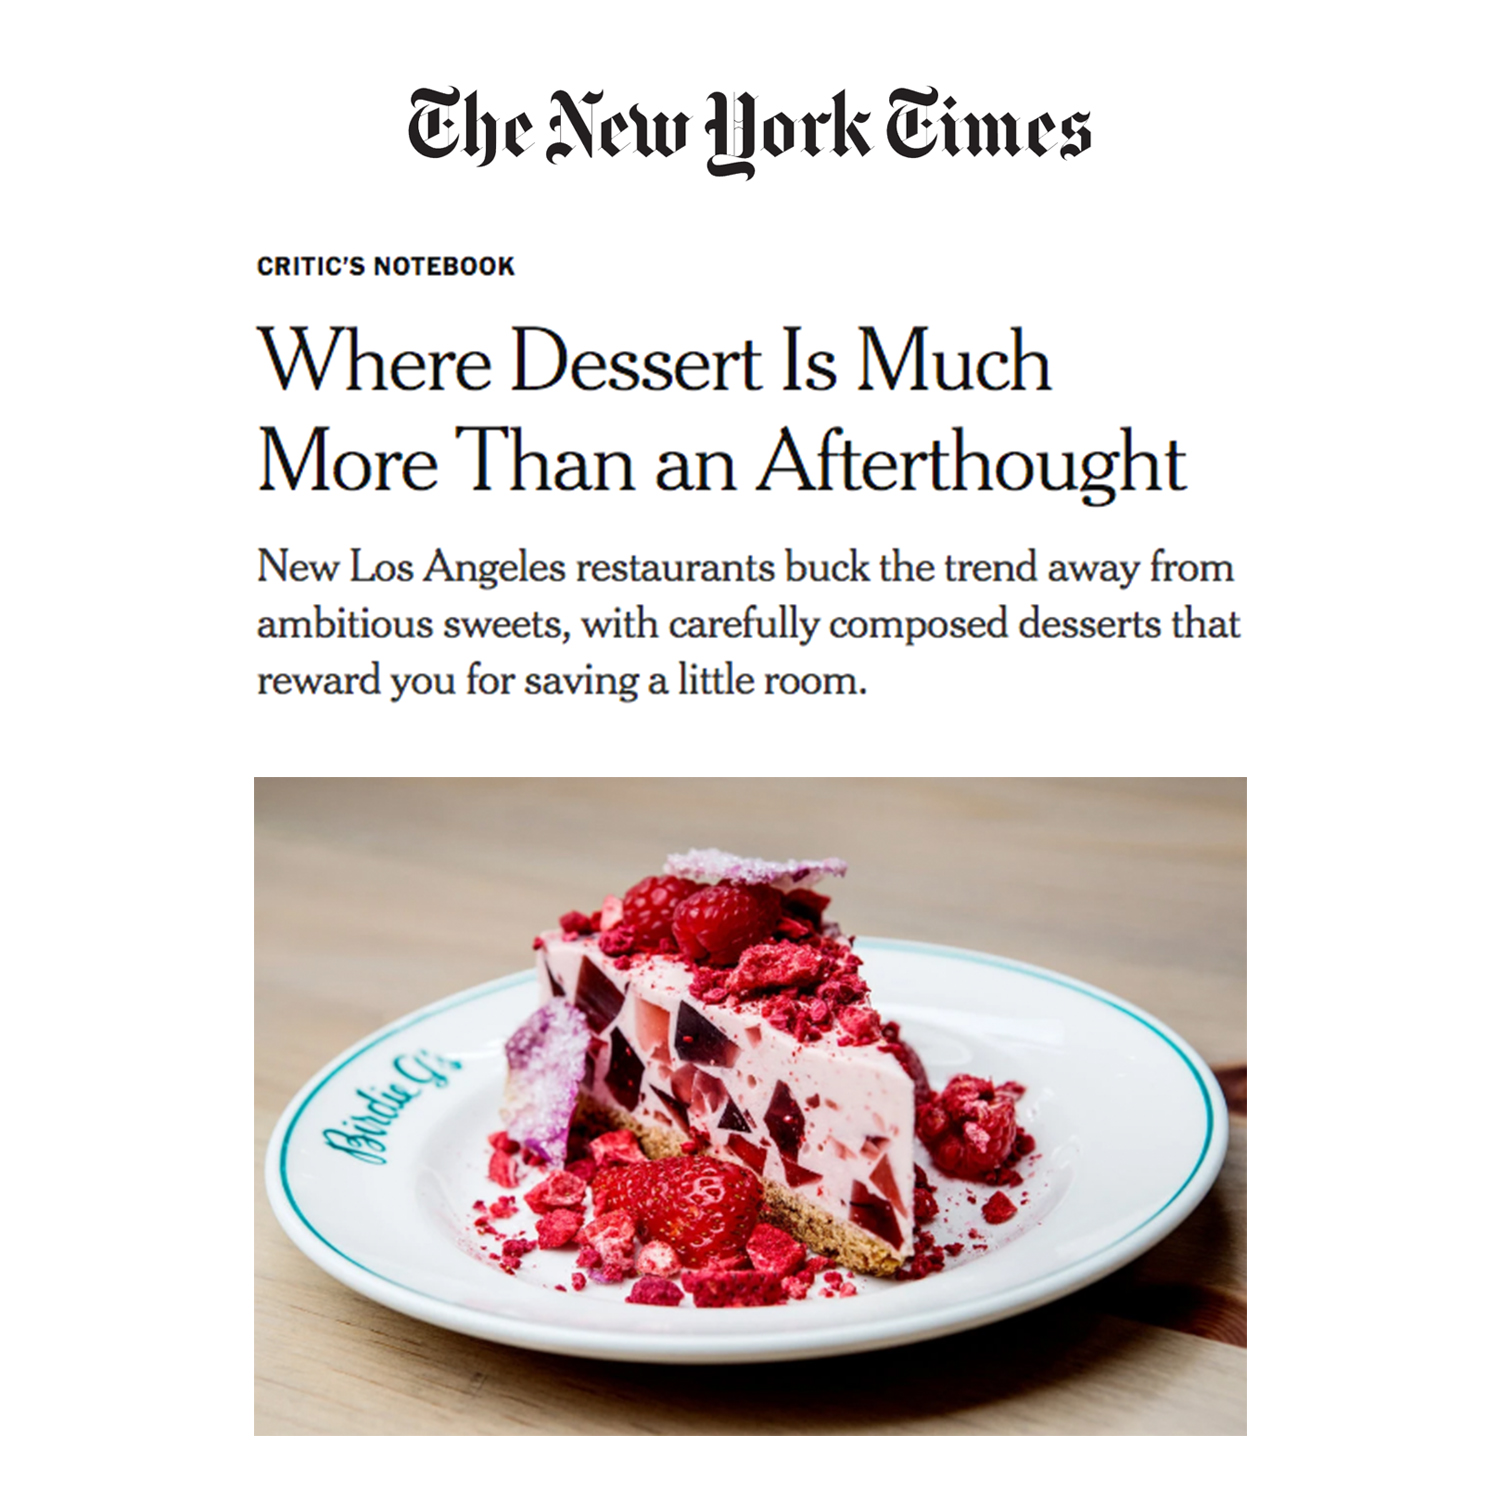 night_nytimes.jpg